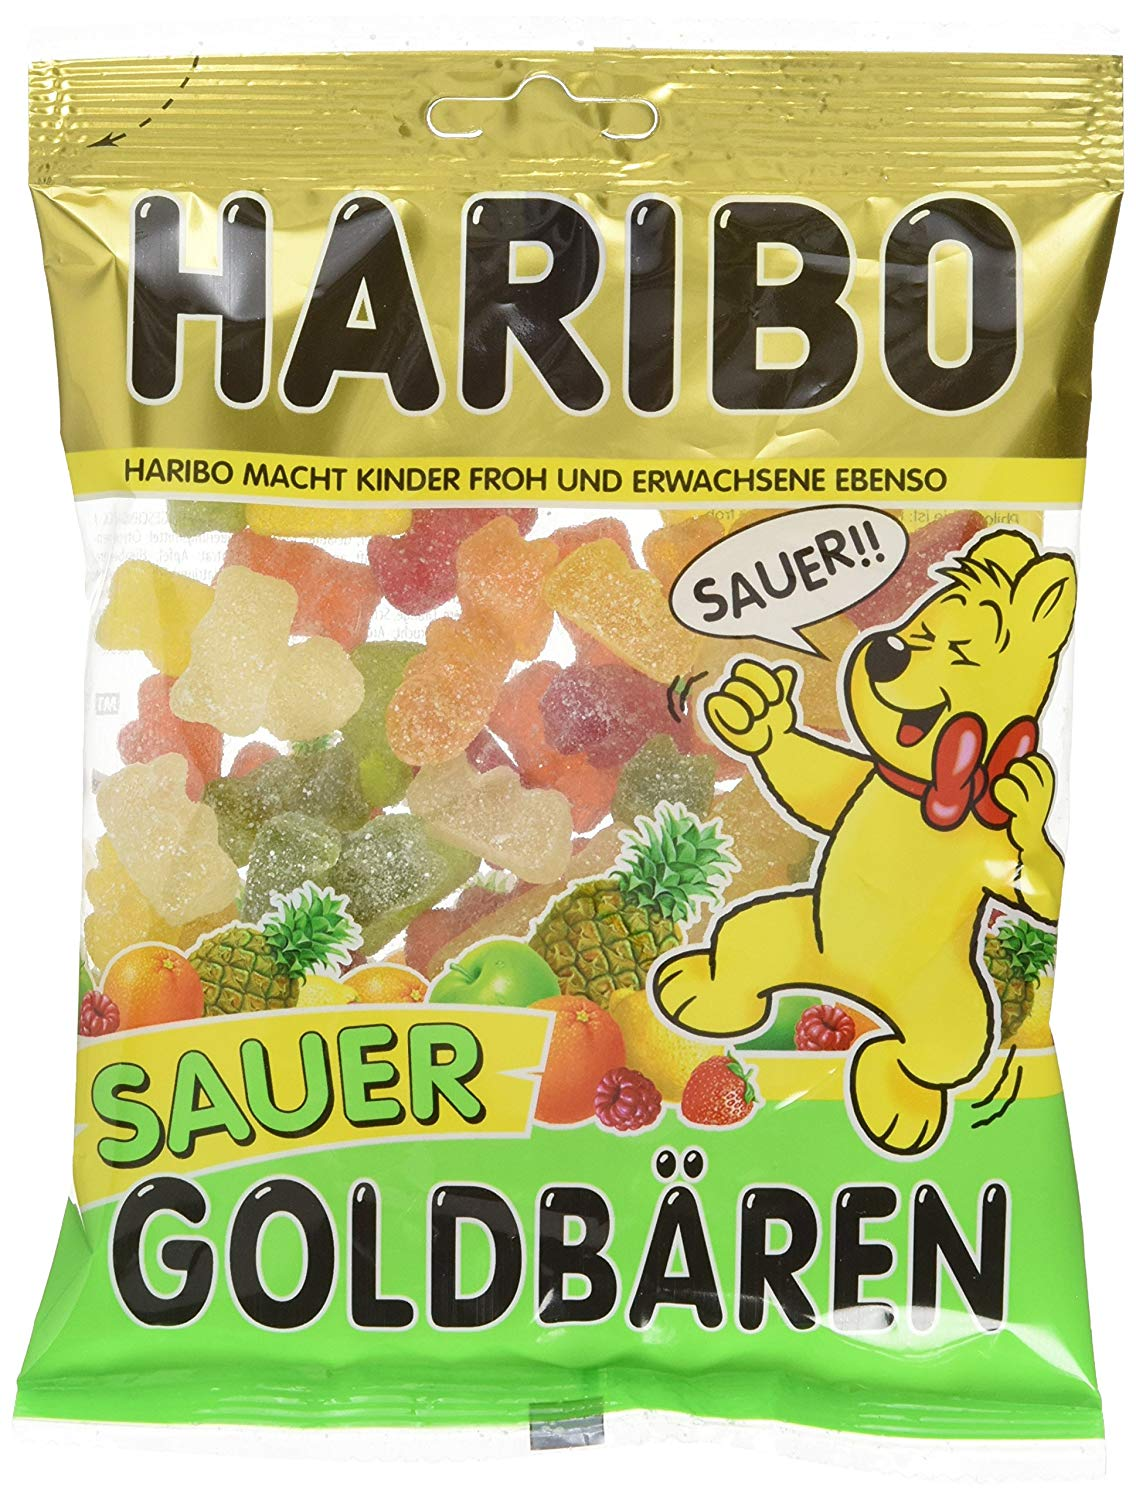 Haribo Goldbären sauer amazon